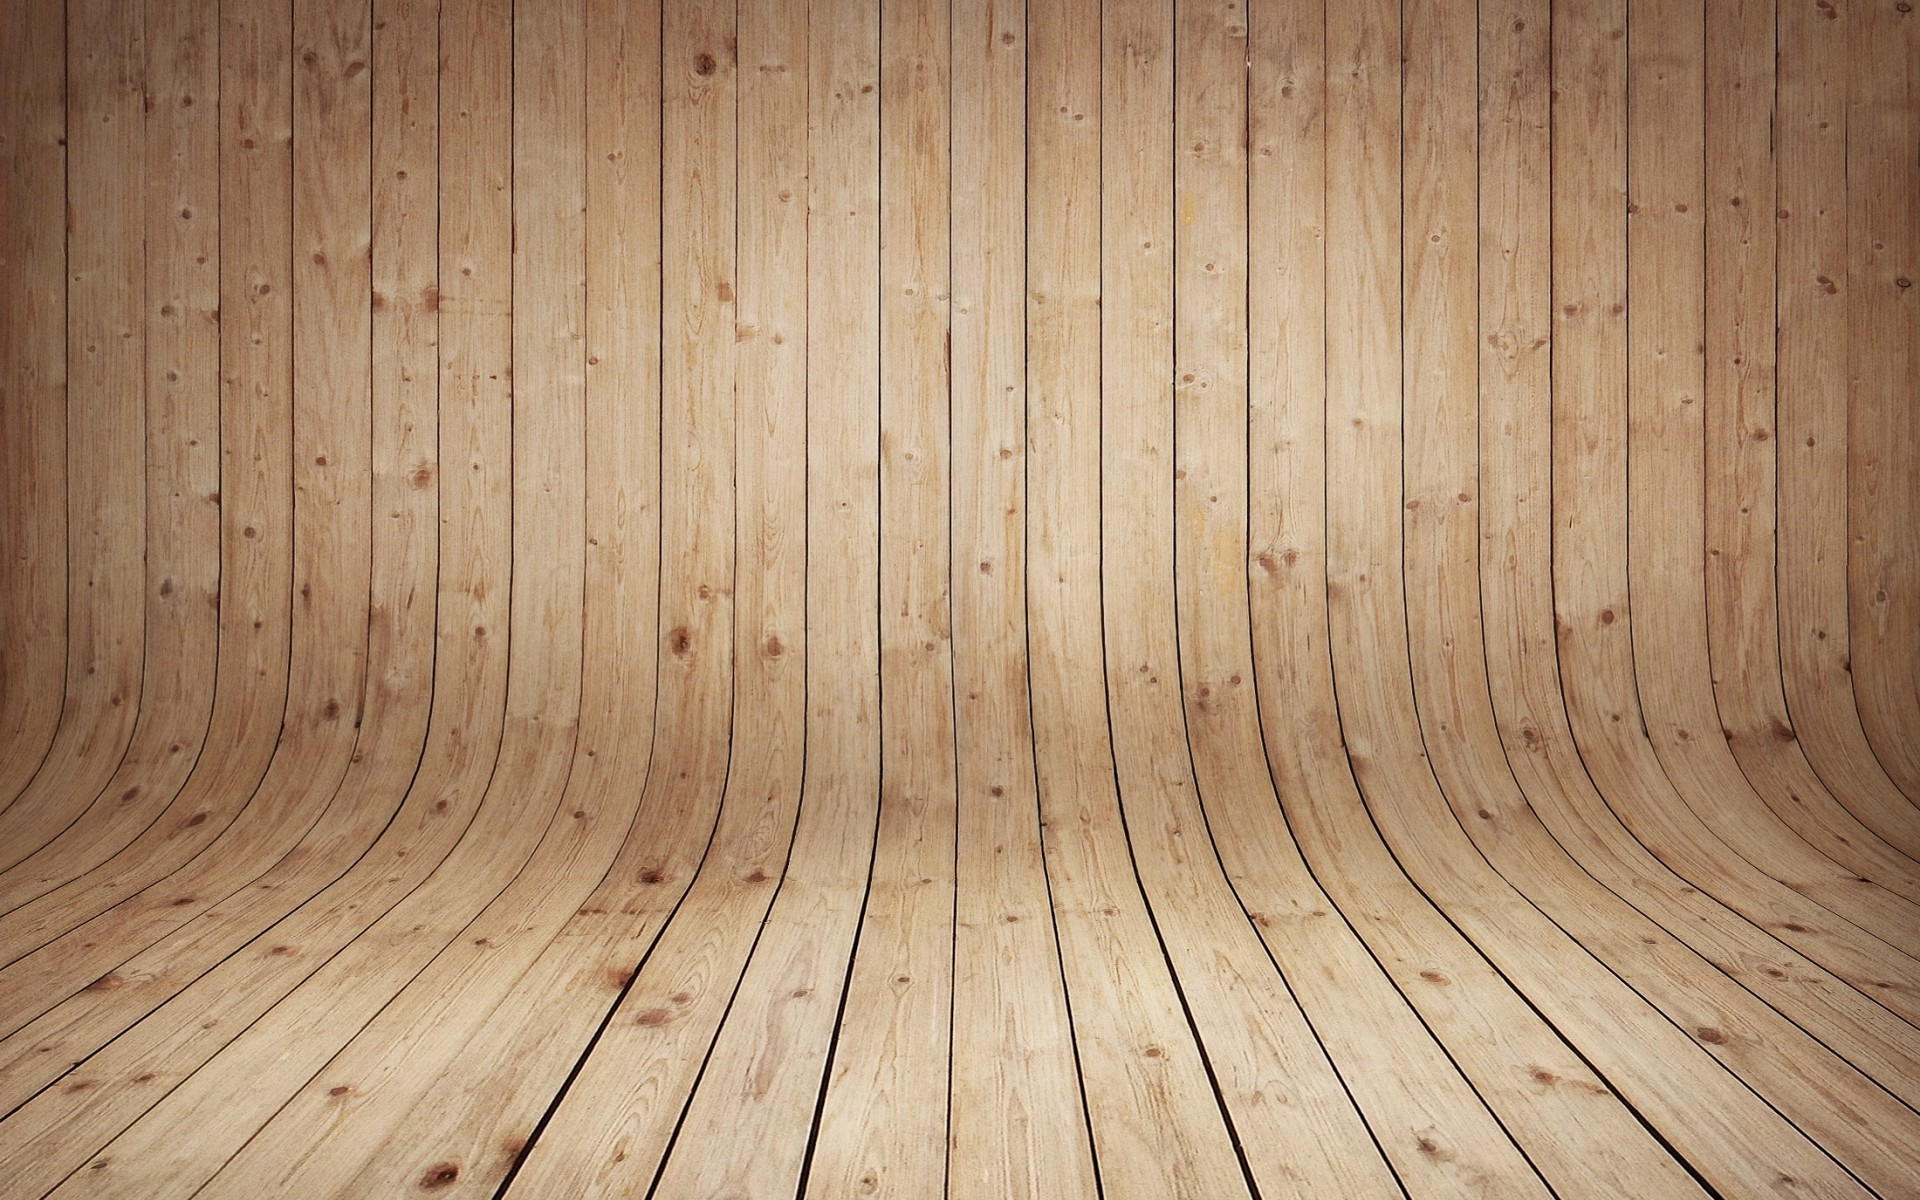 Wooden Desktop Wood Wallpapers High Quality Download Free